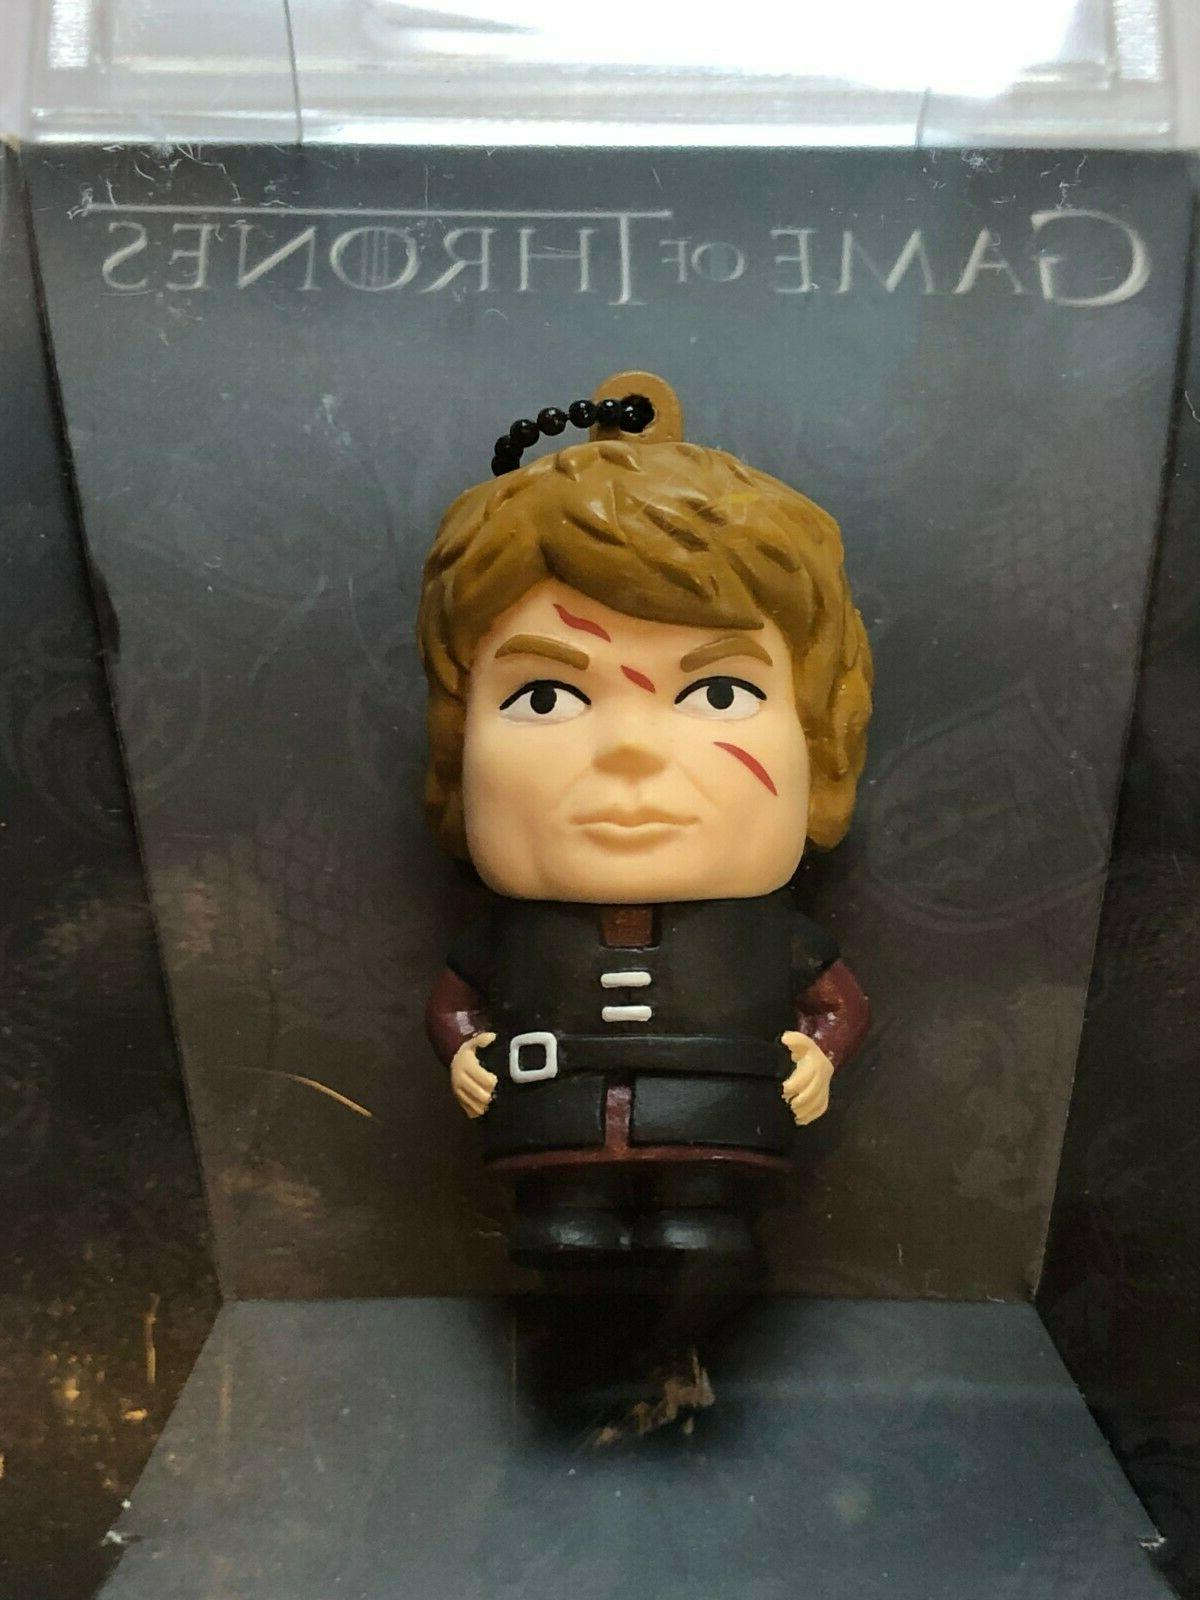 Game Tyrion Lannister, 16GB 2.0